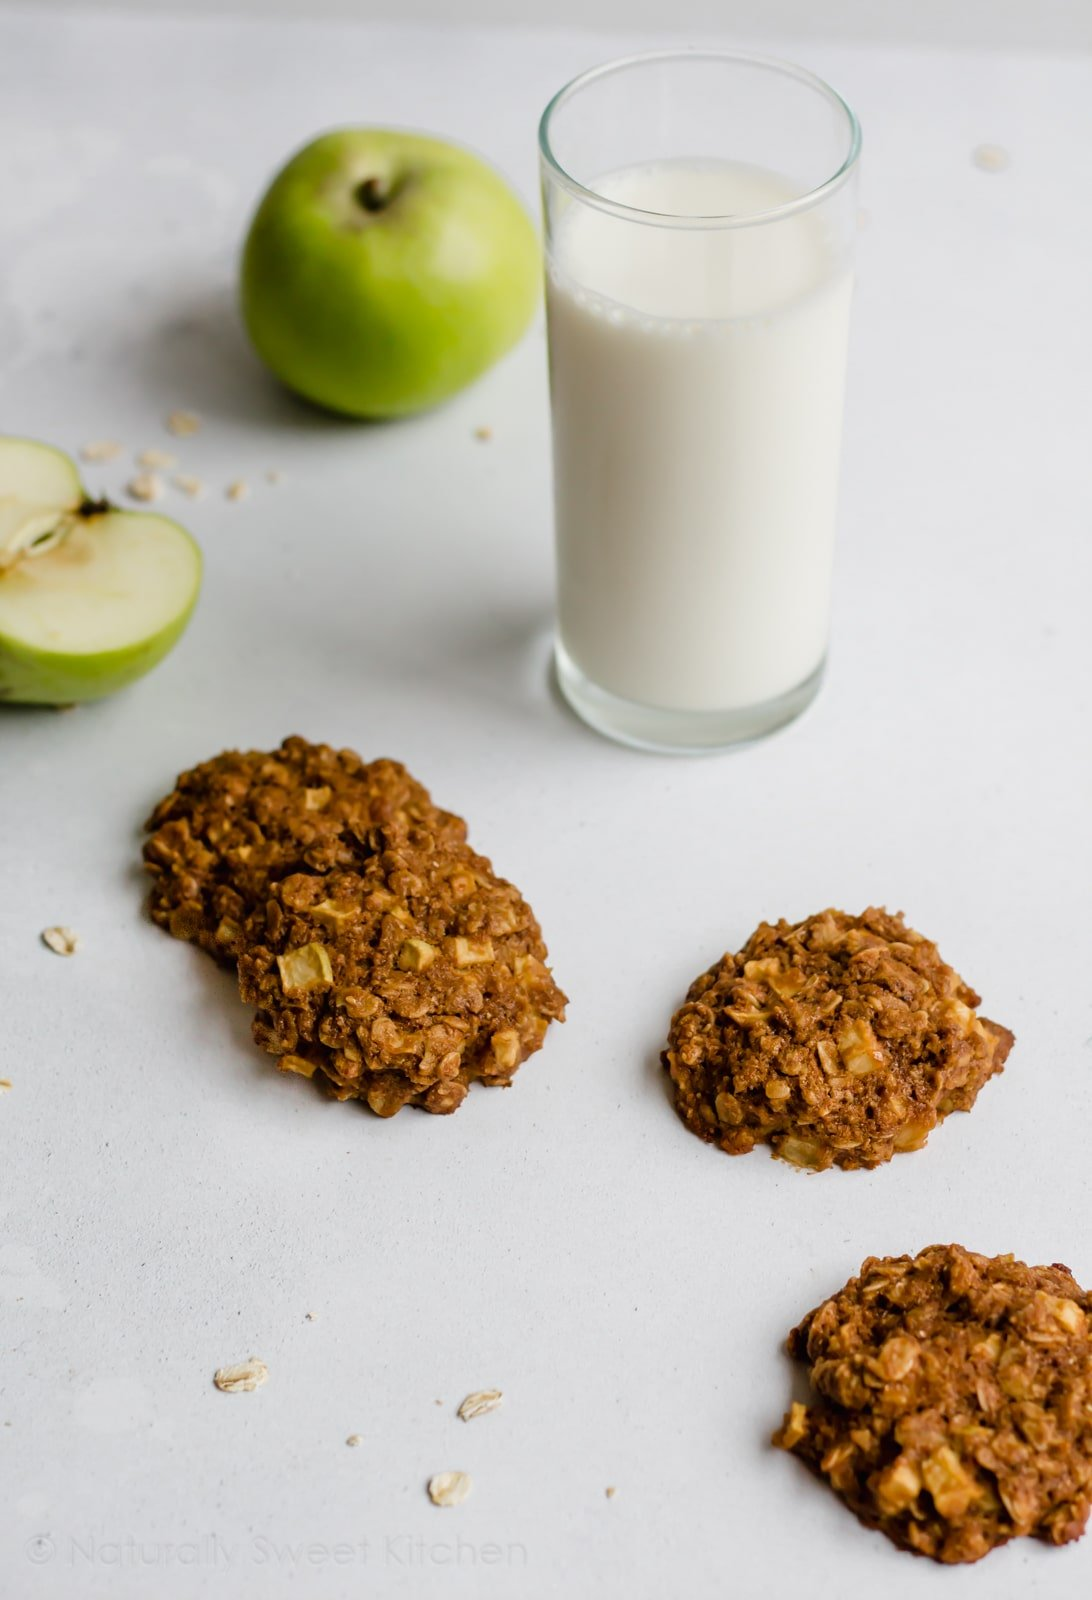 Looking for a great fall baking recipe? These Apple Crumble Cookies bring together the best things of the season: fresh, tart apples and sweet crumble topping. Made with natural ingredients and refined sugar free with a vegan option. Get the recipe at naturallysweetkitchen.com #naturallysweetkitchen #applerecipes #applecrumble #healthyapplerecipe #cookies